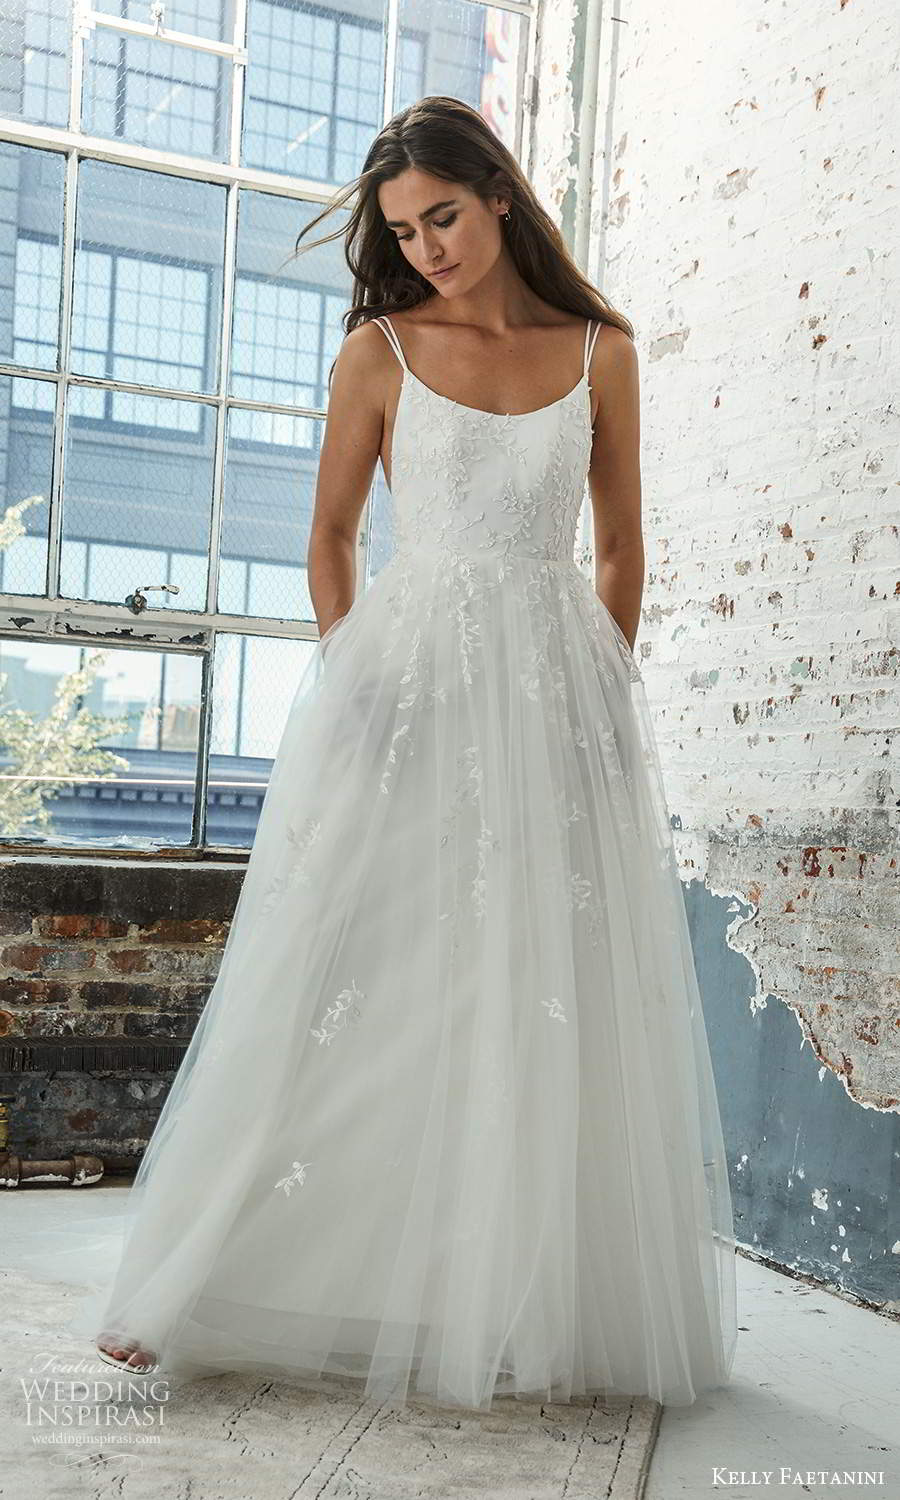 kelly faetanini 2021 bridal sleeveless double straps scoop neckline embellished bodice a line ball gown wedding dress chapel train (20) mv